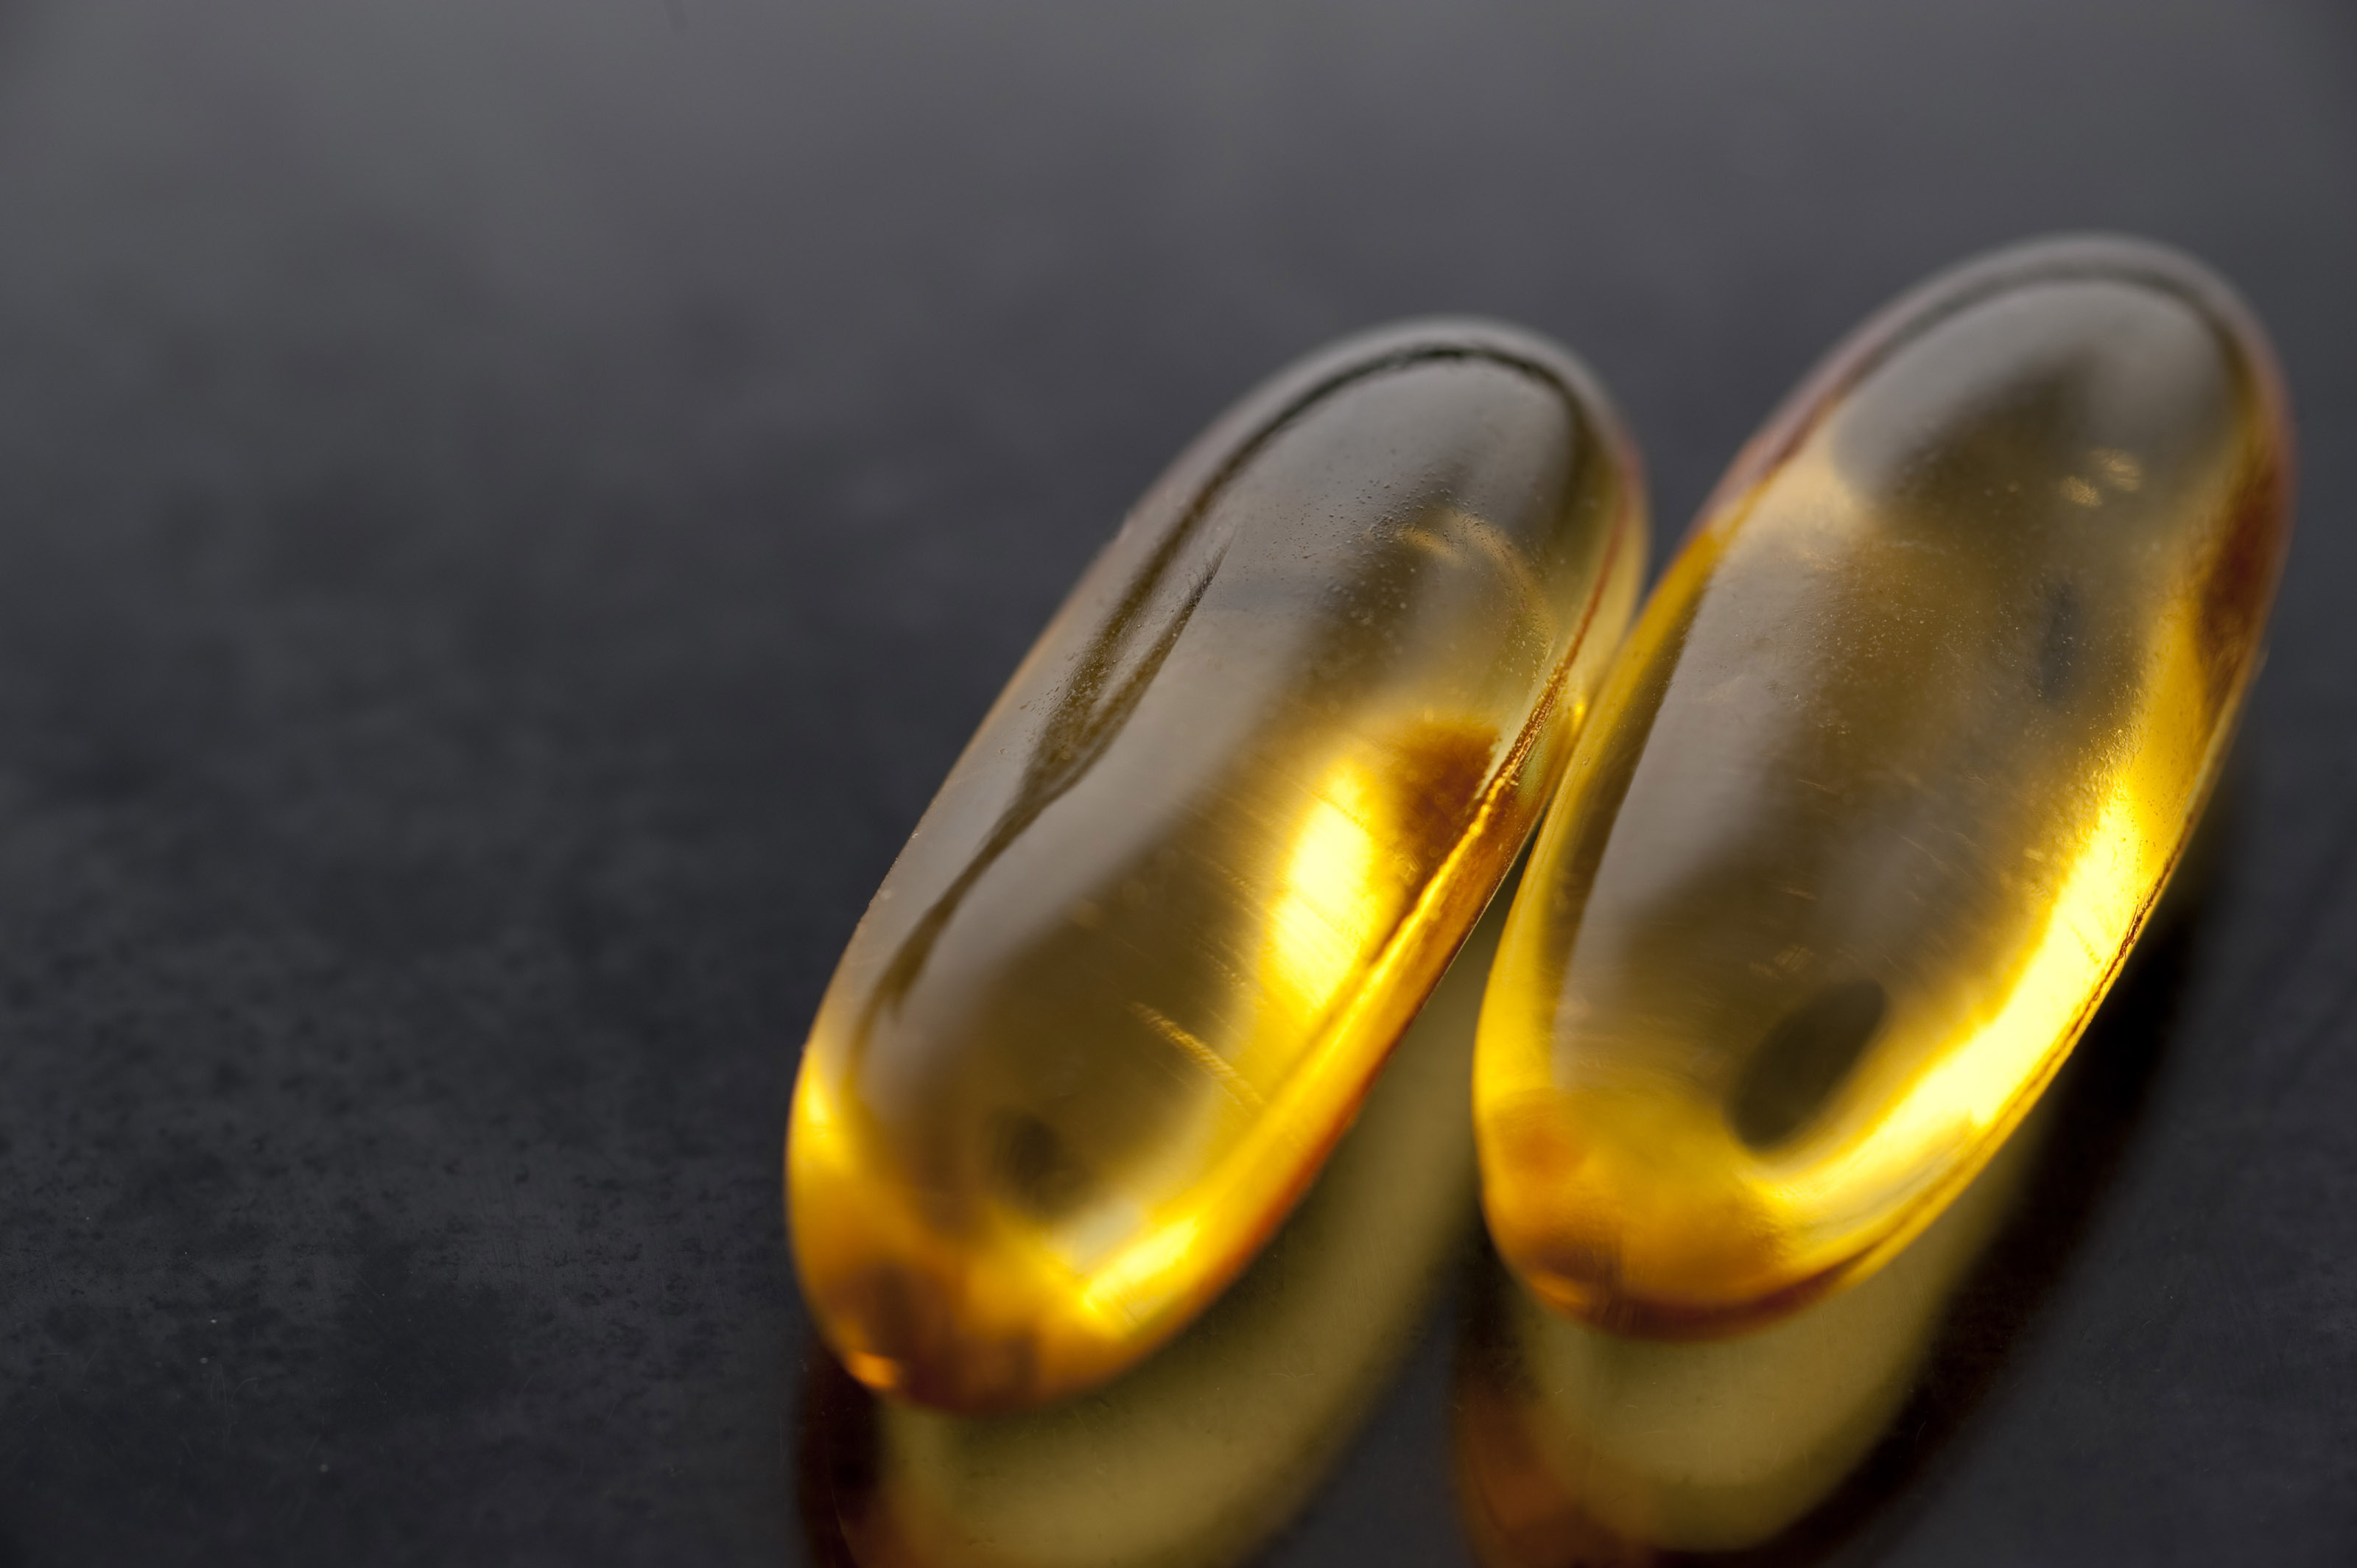 Free stock photo 4853 fish oil freeimageslive for Best fish oil to reduce inflammation